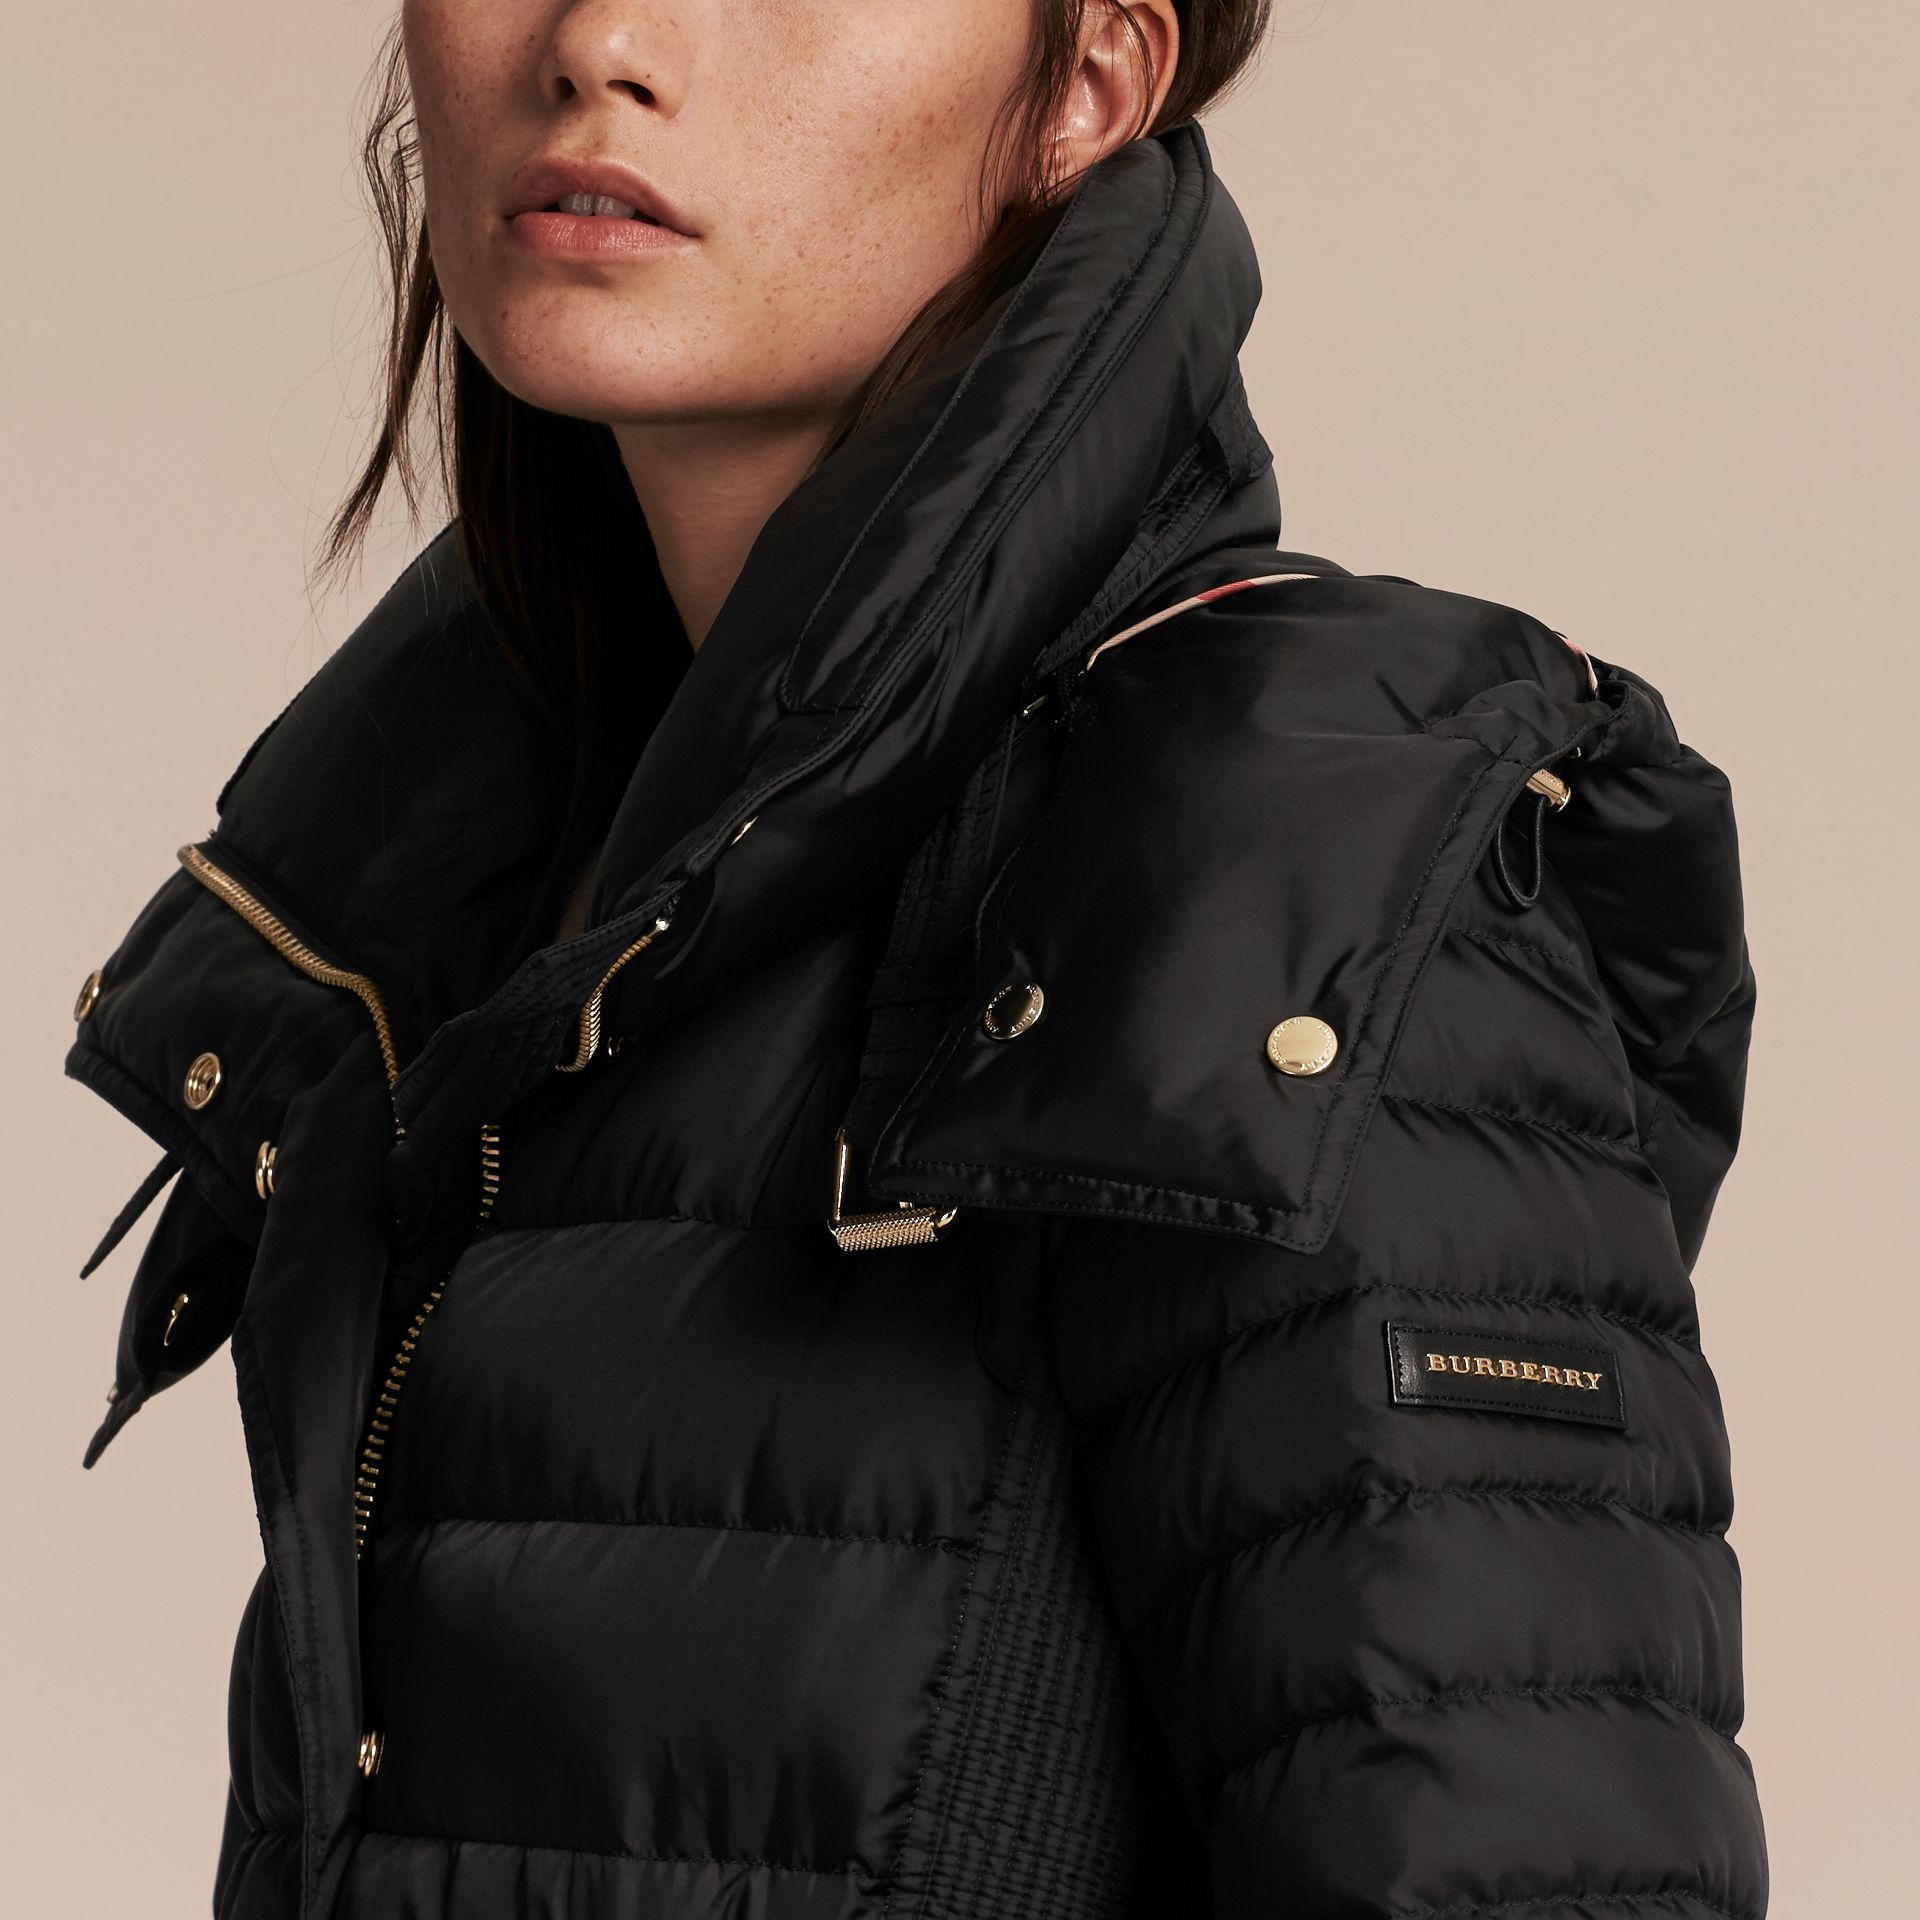 Down-filled Puffer Jacket with Packaway Hood in Black - Women | Burberry - gallery image 5